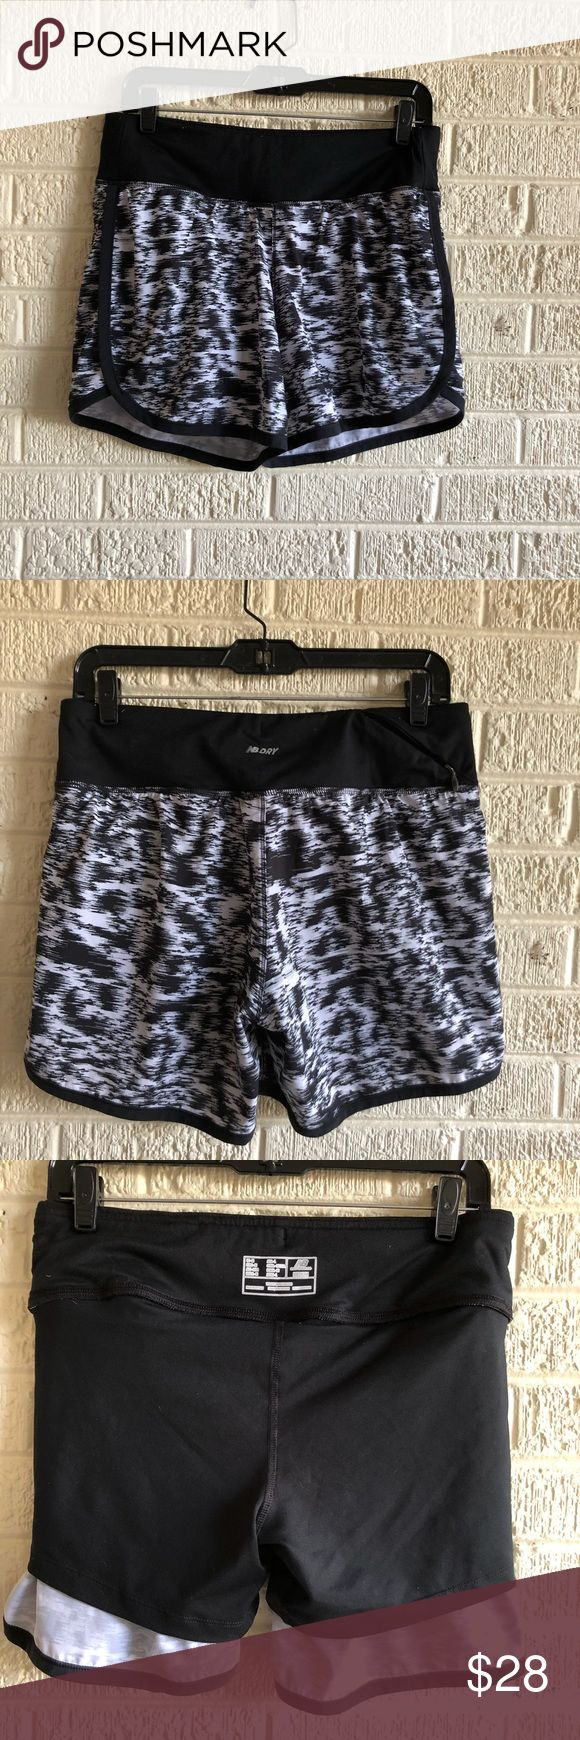 """New Balance Running Shorts women's 5"""" Printed Impact Short Cut from moisture-wicking stretch woven fabric, wide jersey waistband ensures a secure fit, and the internal comfort brief stays in place during long runs. Just too big for me.worn twice. New Balance Shorts"""